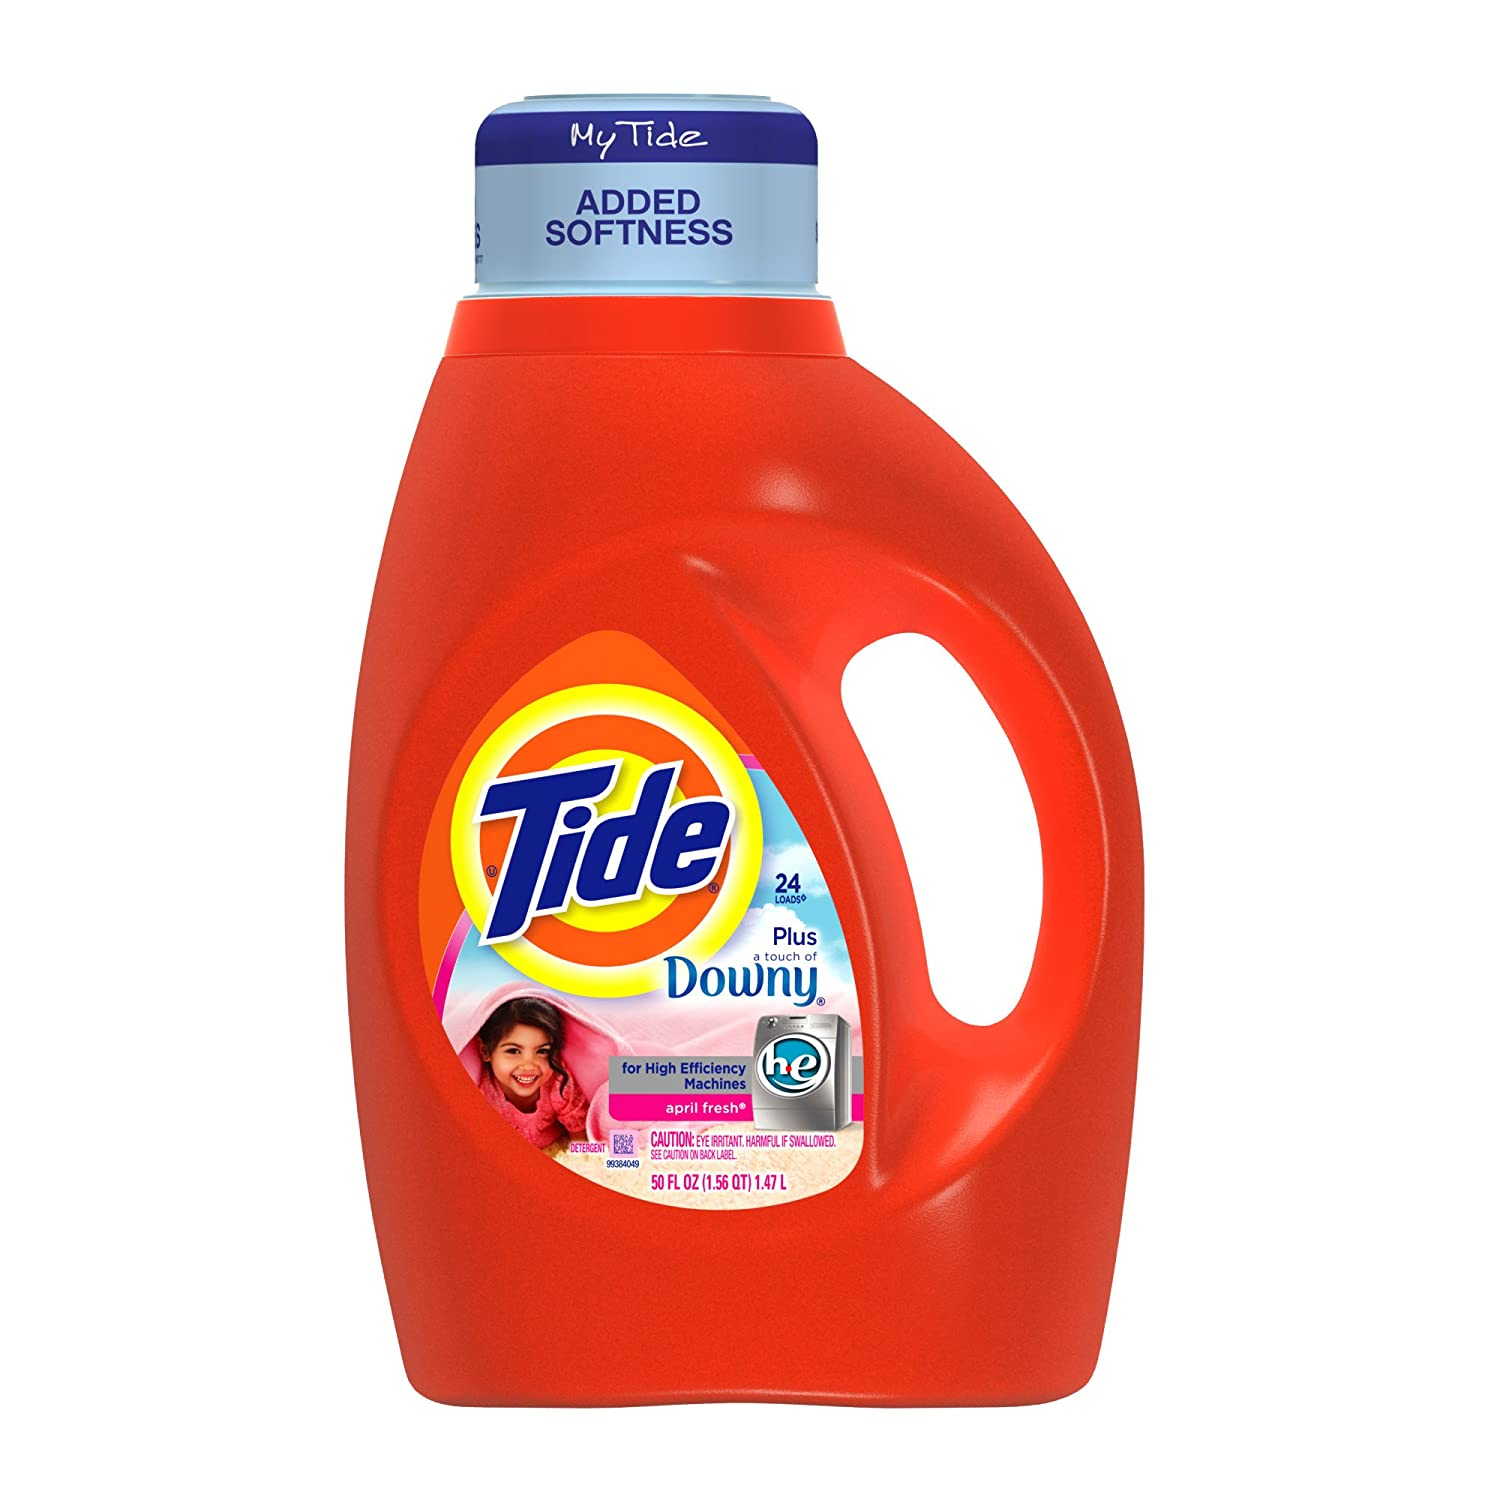 High Efficiency Detergent Brands Amazoncom Tide With Touch Of Downy High Efficiency April Fresh